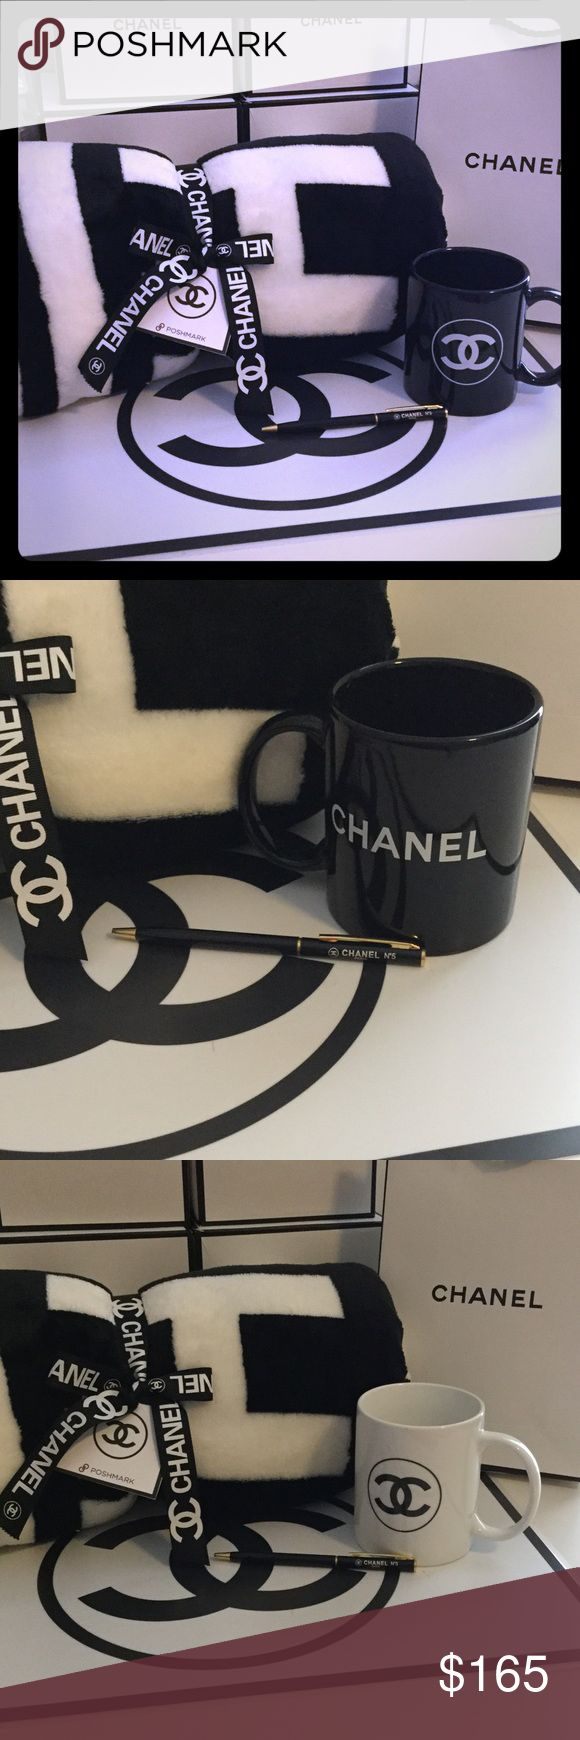 🎁Chanel Holiday Bundle 🎁 Mug, Throw and 1 CC Pen Great gift idea for the Chanel lover in your life! Includes the plush camellia flower throw (for pictures of Throw fully laid out see my closet!), ceramic coffee mug + 1 Chanel pen! Your choice of black or white mug! Chanel gift bag included! CHANEL Intimates & Sleepwear